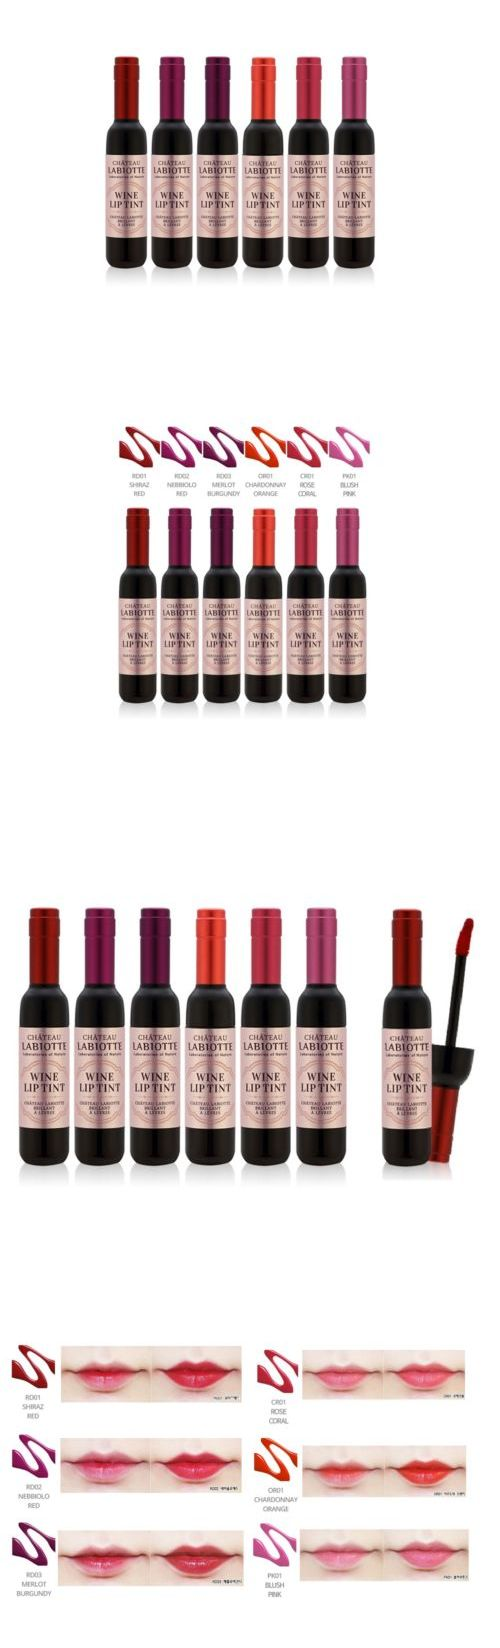 Lip Stain: [Ship By Usps] Labiotte New Chateau Labiotte Wine Lip Tint 6Pcs Set 7G -> BUY IT NOW ONLY: $46.9 on eBay!